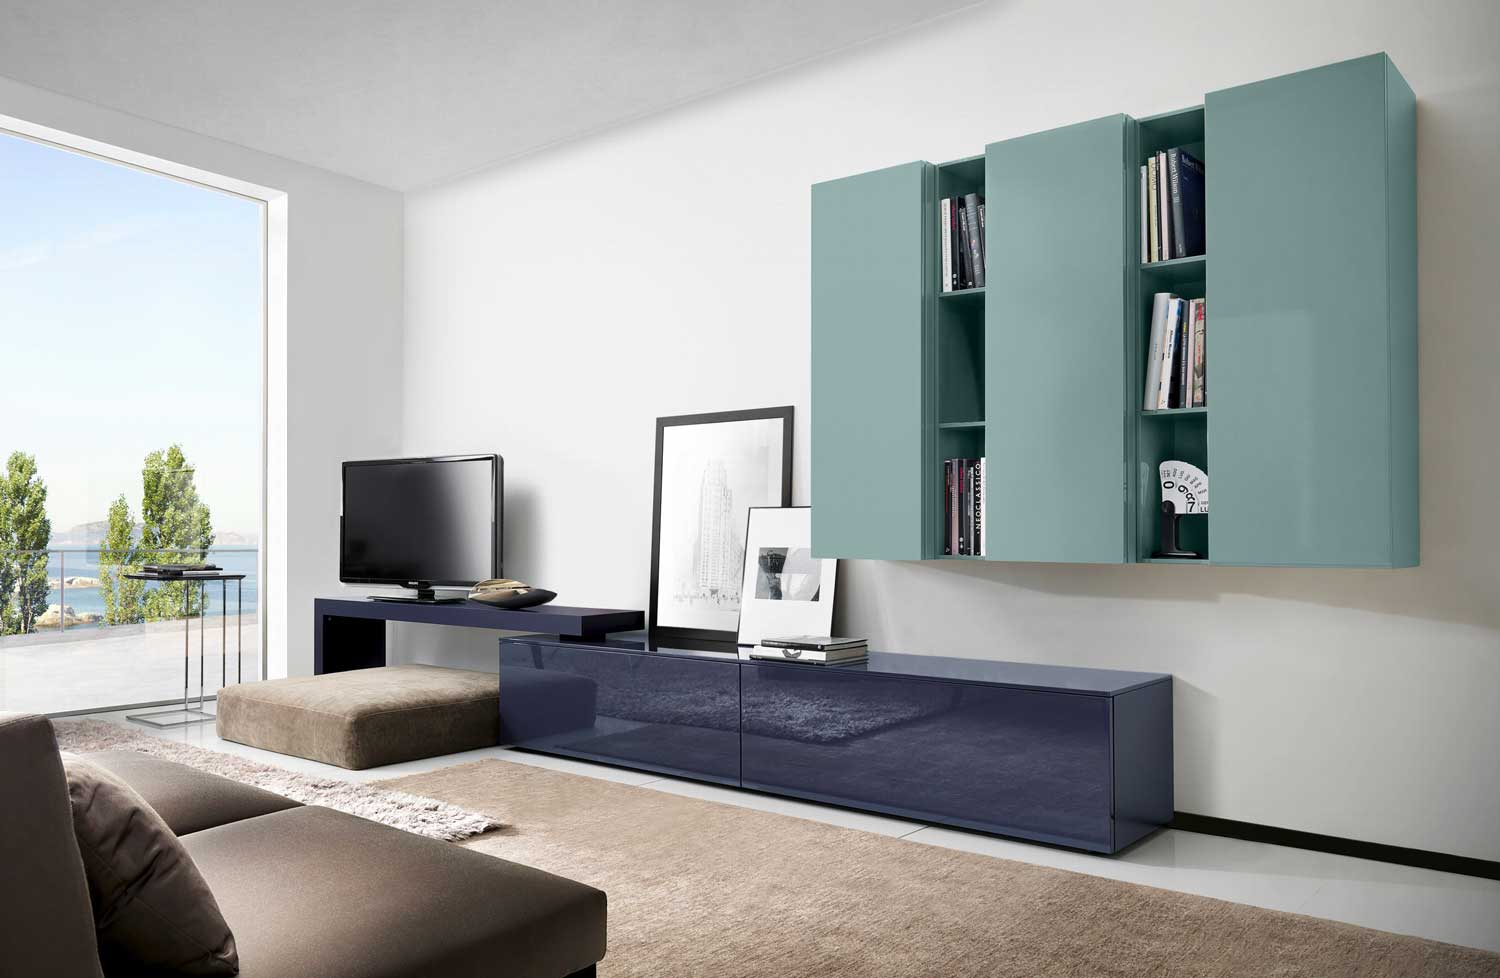 Interieur Design Contemporain Amenagement Interieur Design Contemporain Am Nagement